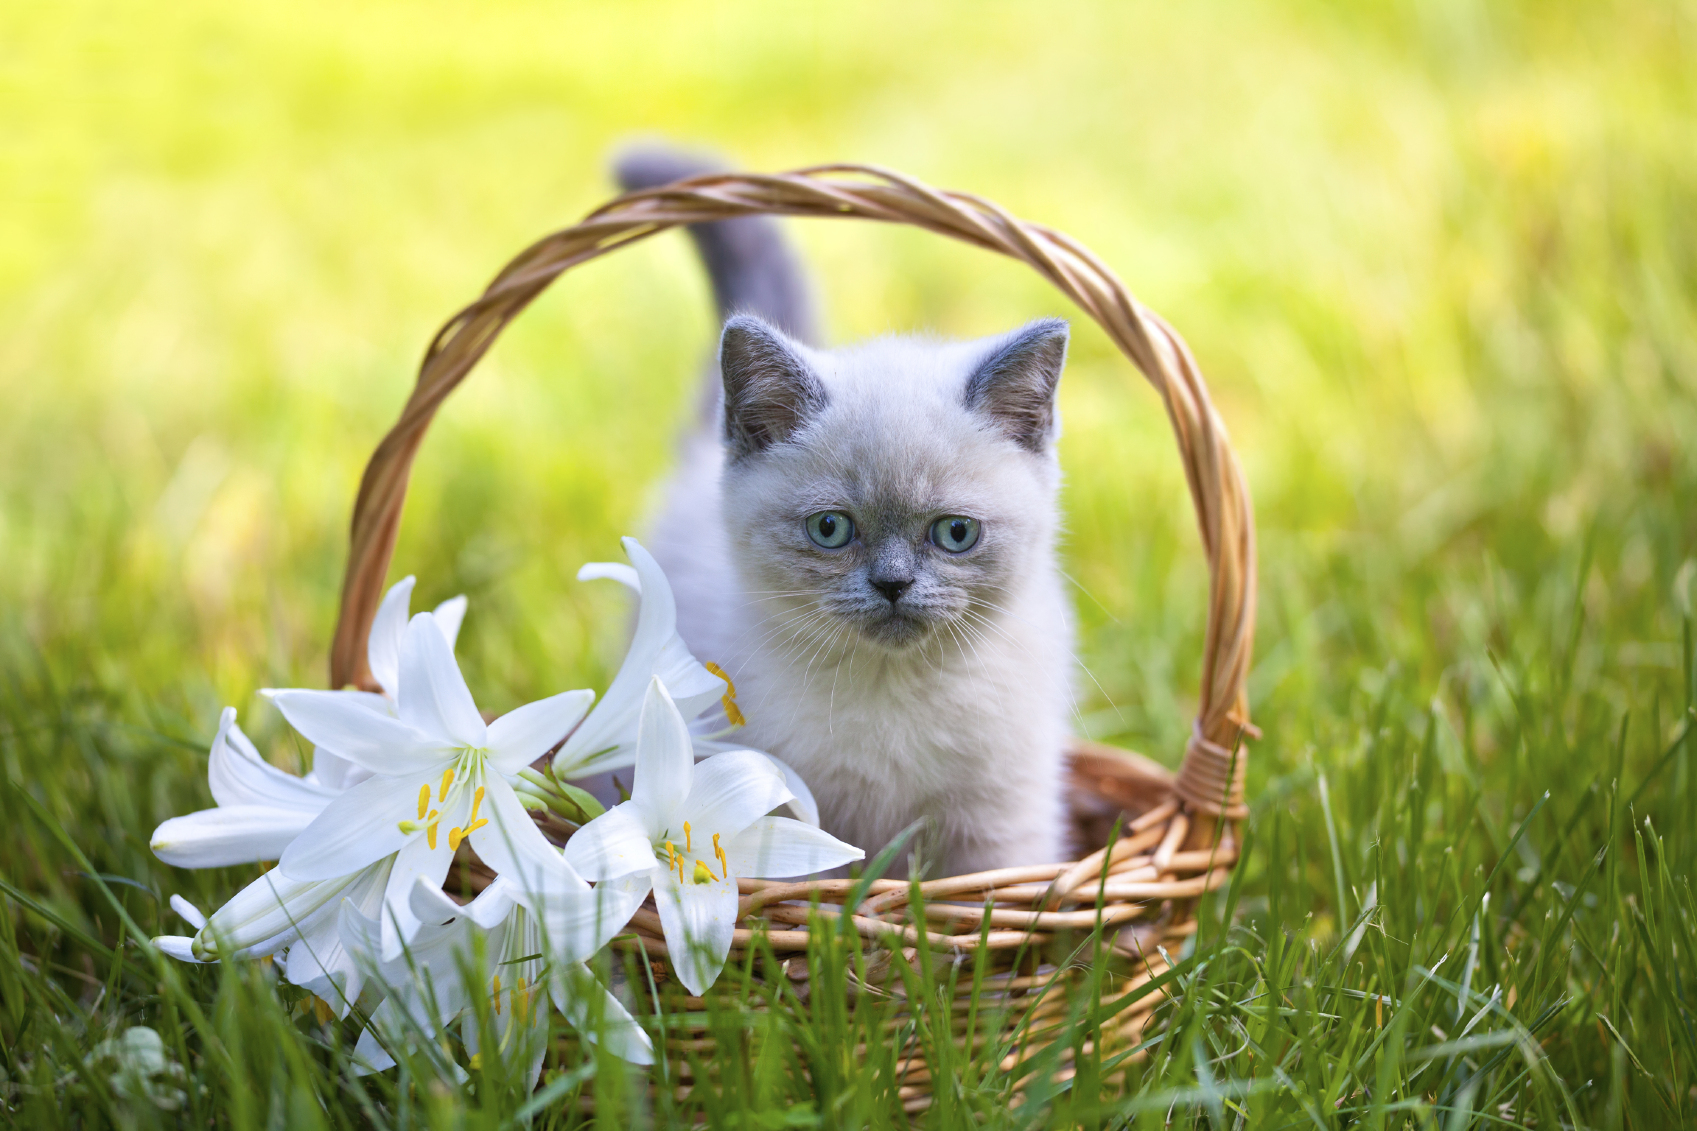 Pet owners are being warned of the dangers household plants could pose to their animals.